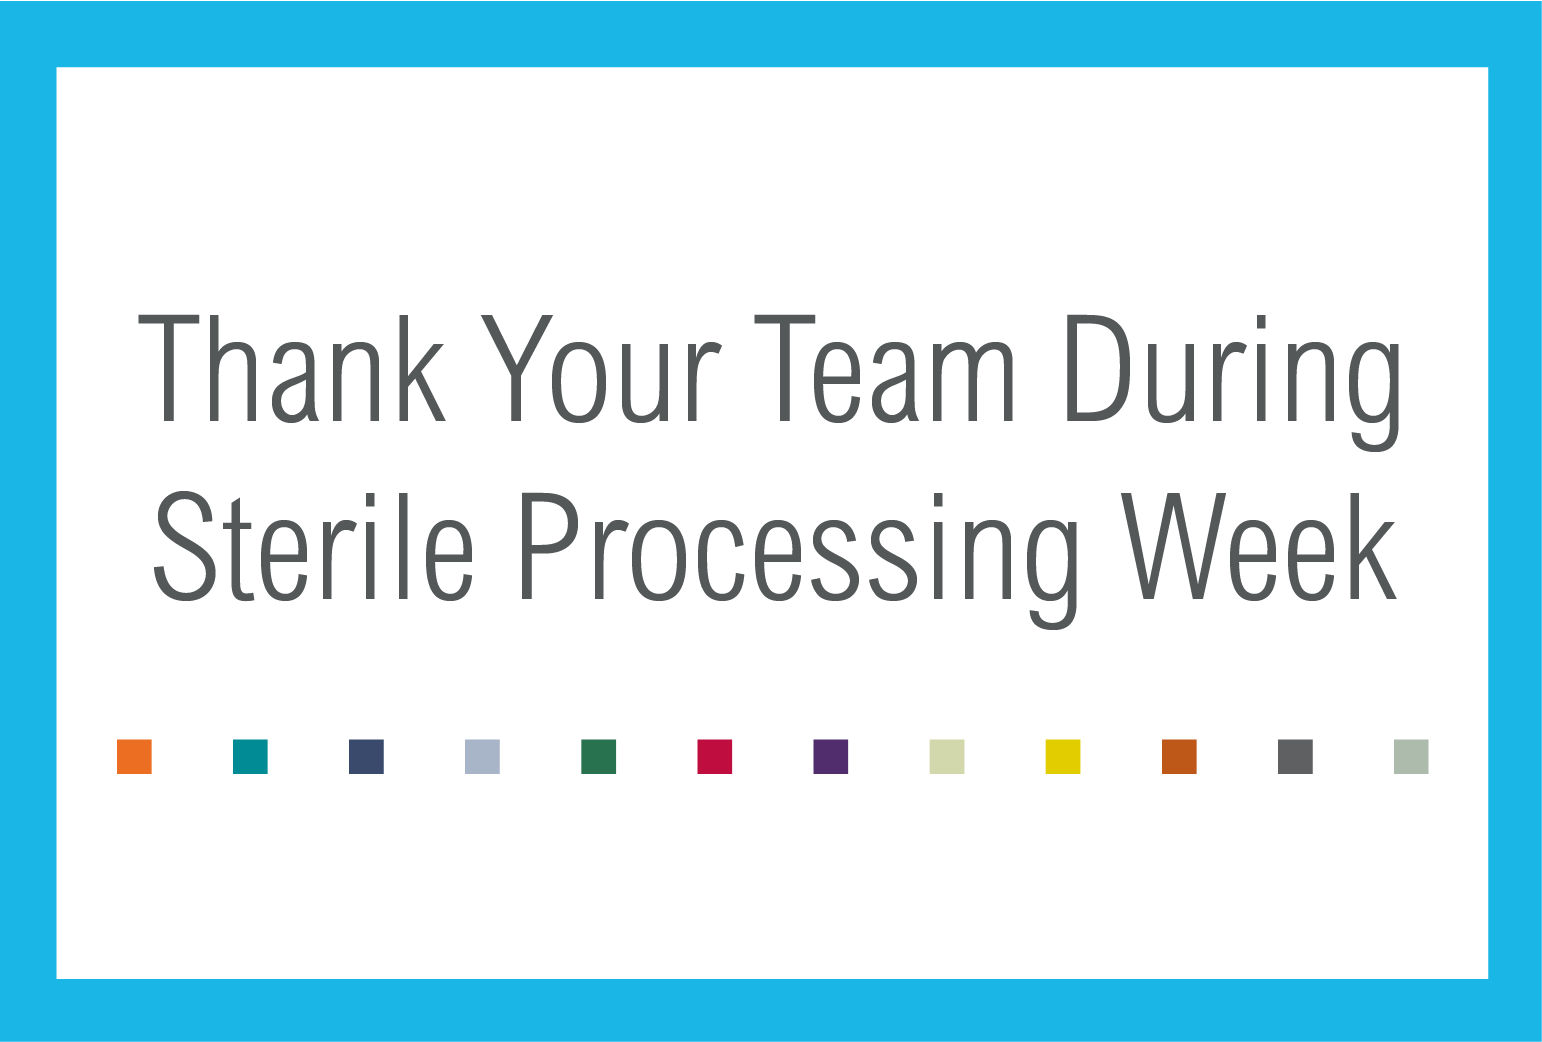 Thank Your Team During Sterile Processing Week